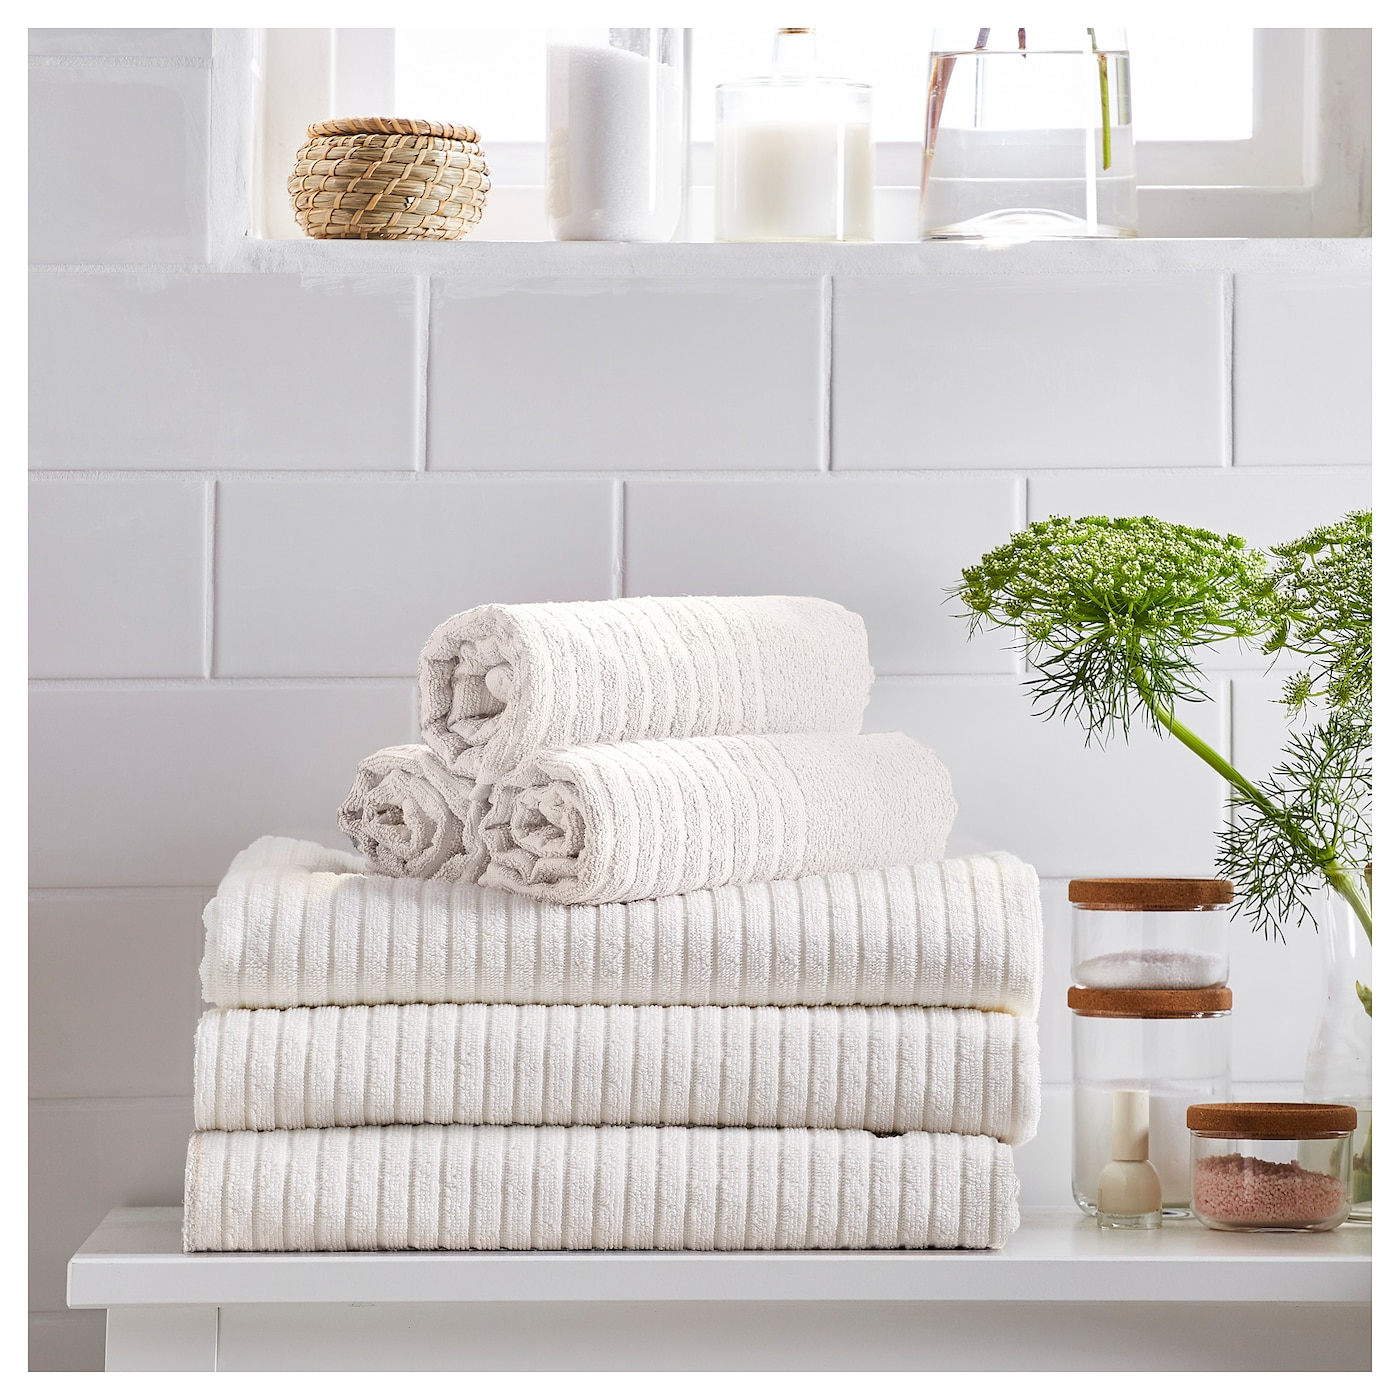 IKEA VÅGSJÖN bath towel The long, fine fibres of combed cotton create a soft and durable towel.